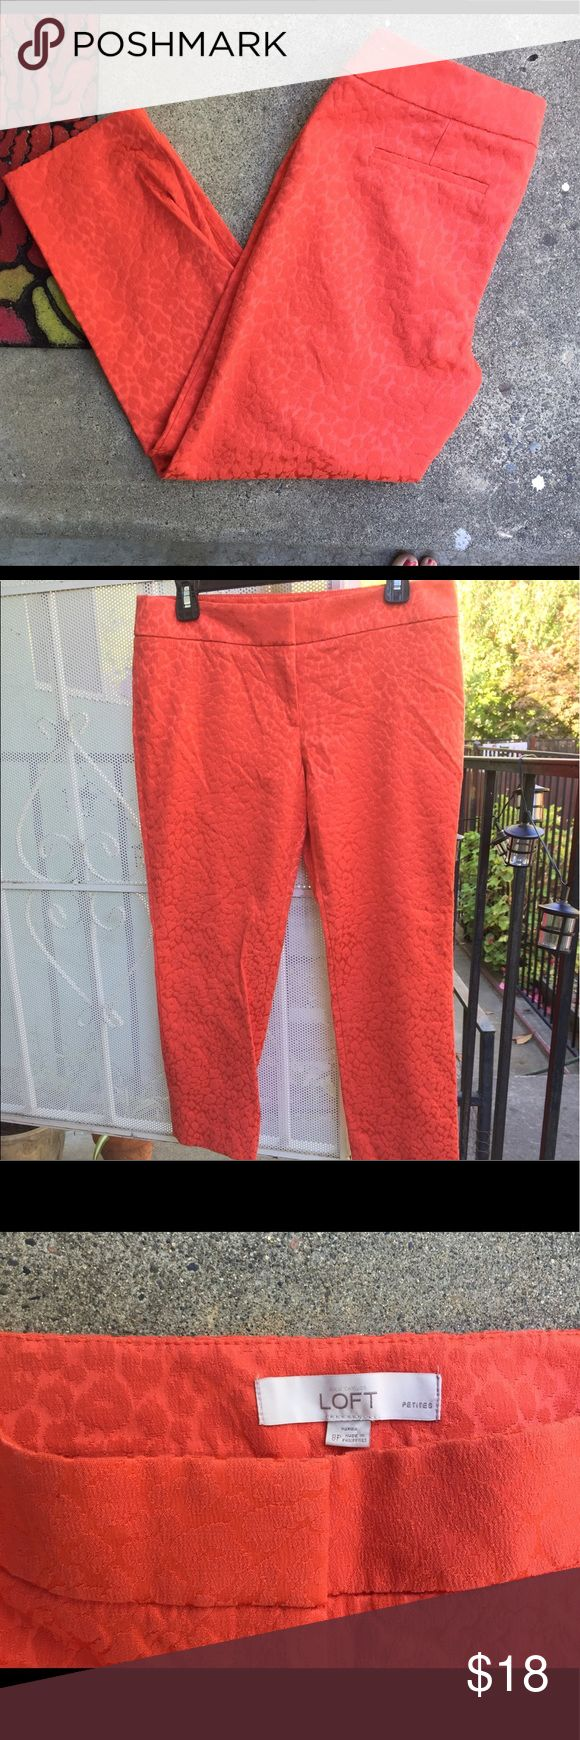 Loft Fiery Orange Cheetah Print Trousers Need to step up your work game? Wear these trousers to work and show them who is boss. They would look good with everything and they are subtle enough to show your sassy side but also work appropriate approved. They are a petite size but they would be fine as cropped trousers for you regular lengthen babes. Happy shopping. LOFT Pants Trousers